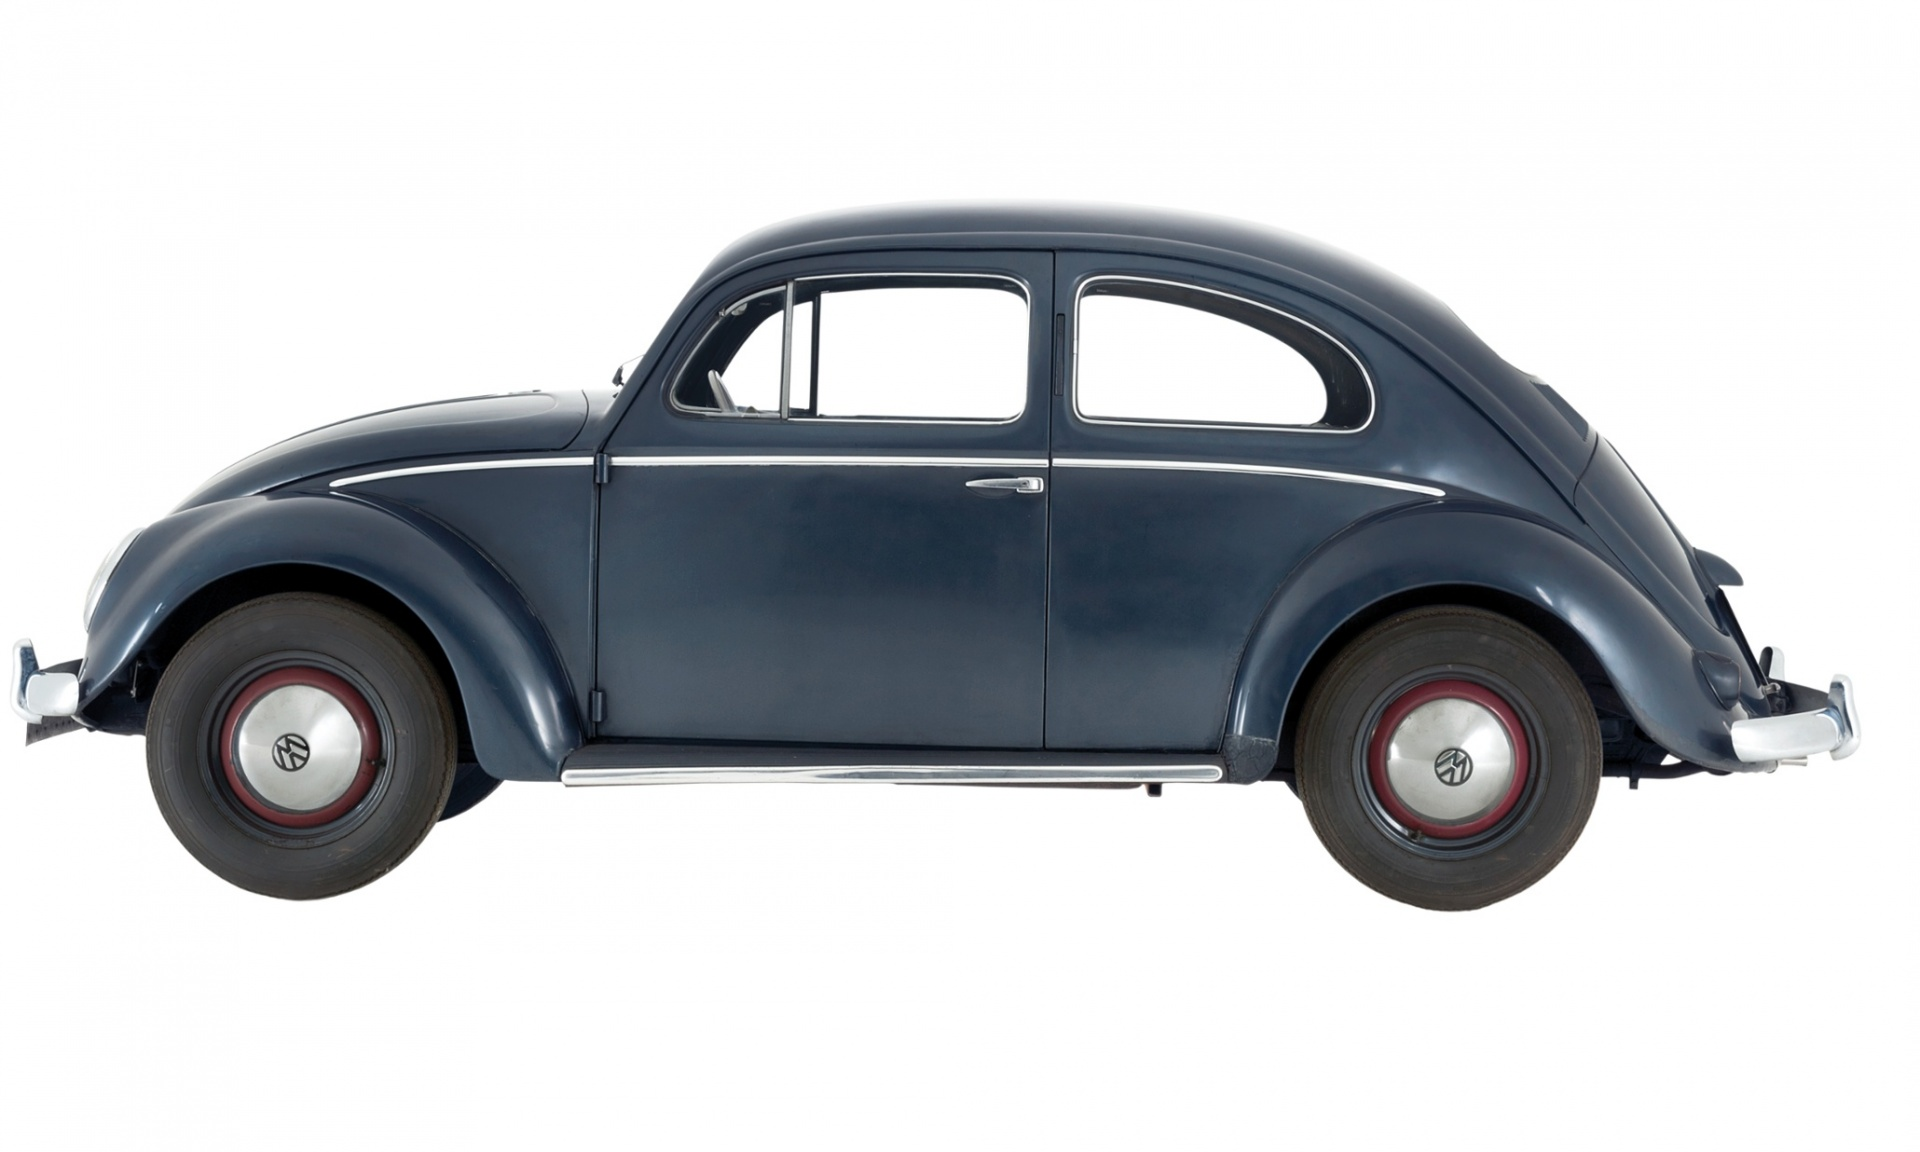 VW Beetle, West Germany,1953